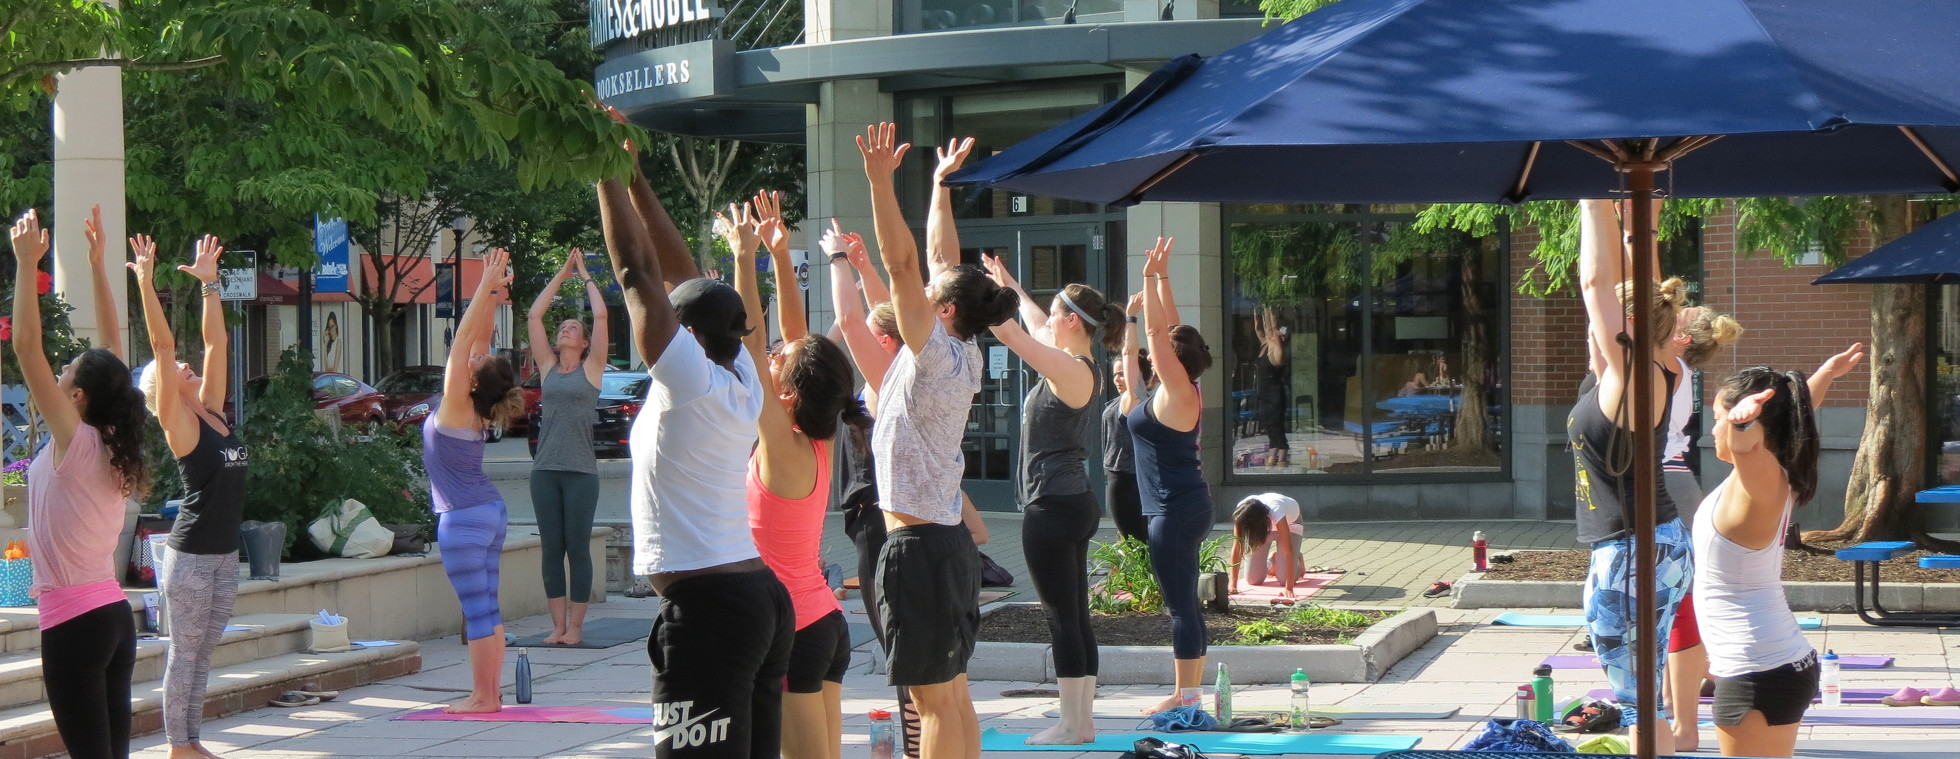 2019 Blue Back Square Yoga Event